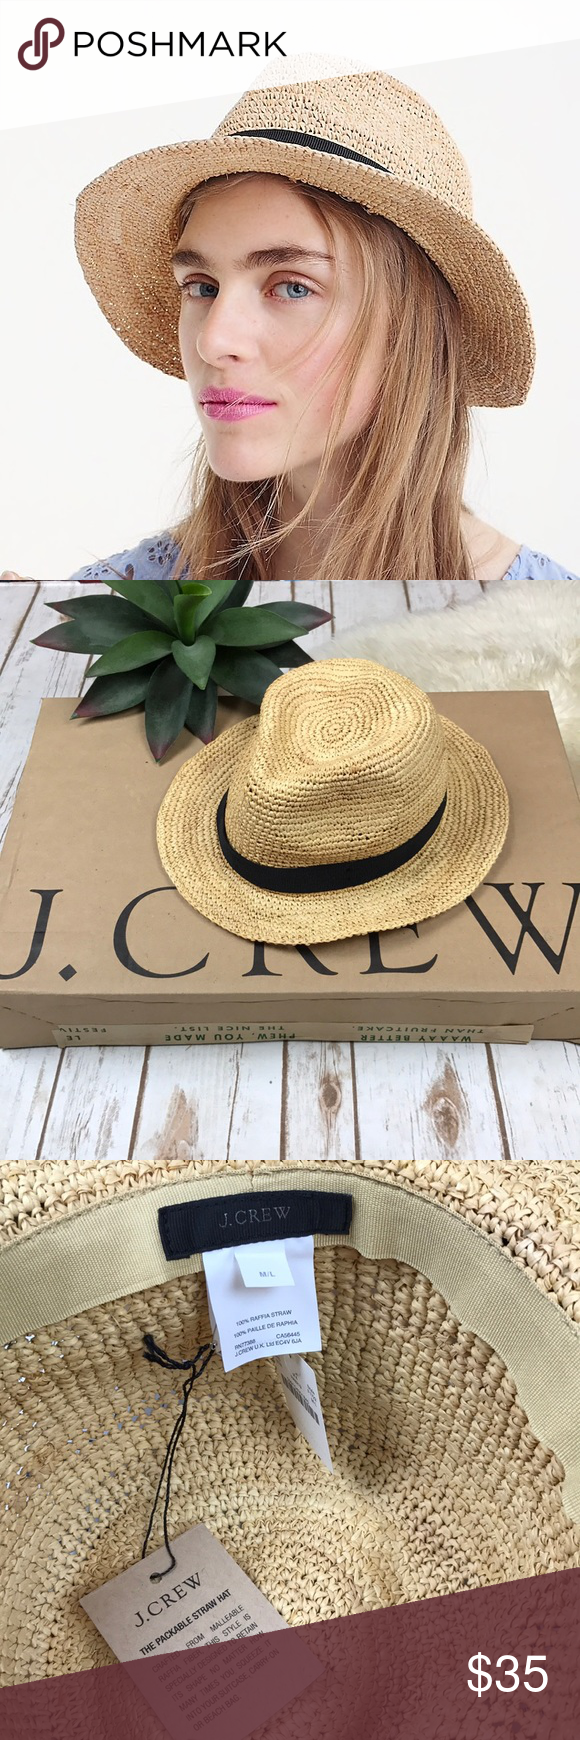 b6b38d0e95e98 J. Crew Packable Straw Hat New With Tags 🔸 J Crew Packable Straw Hat. Size  M L. J. Crew Accessories Hats